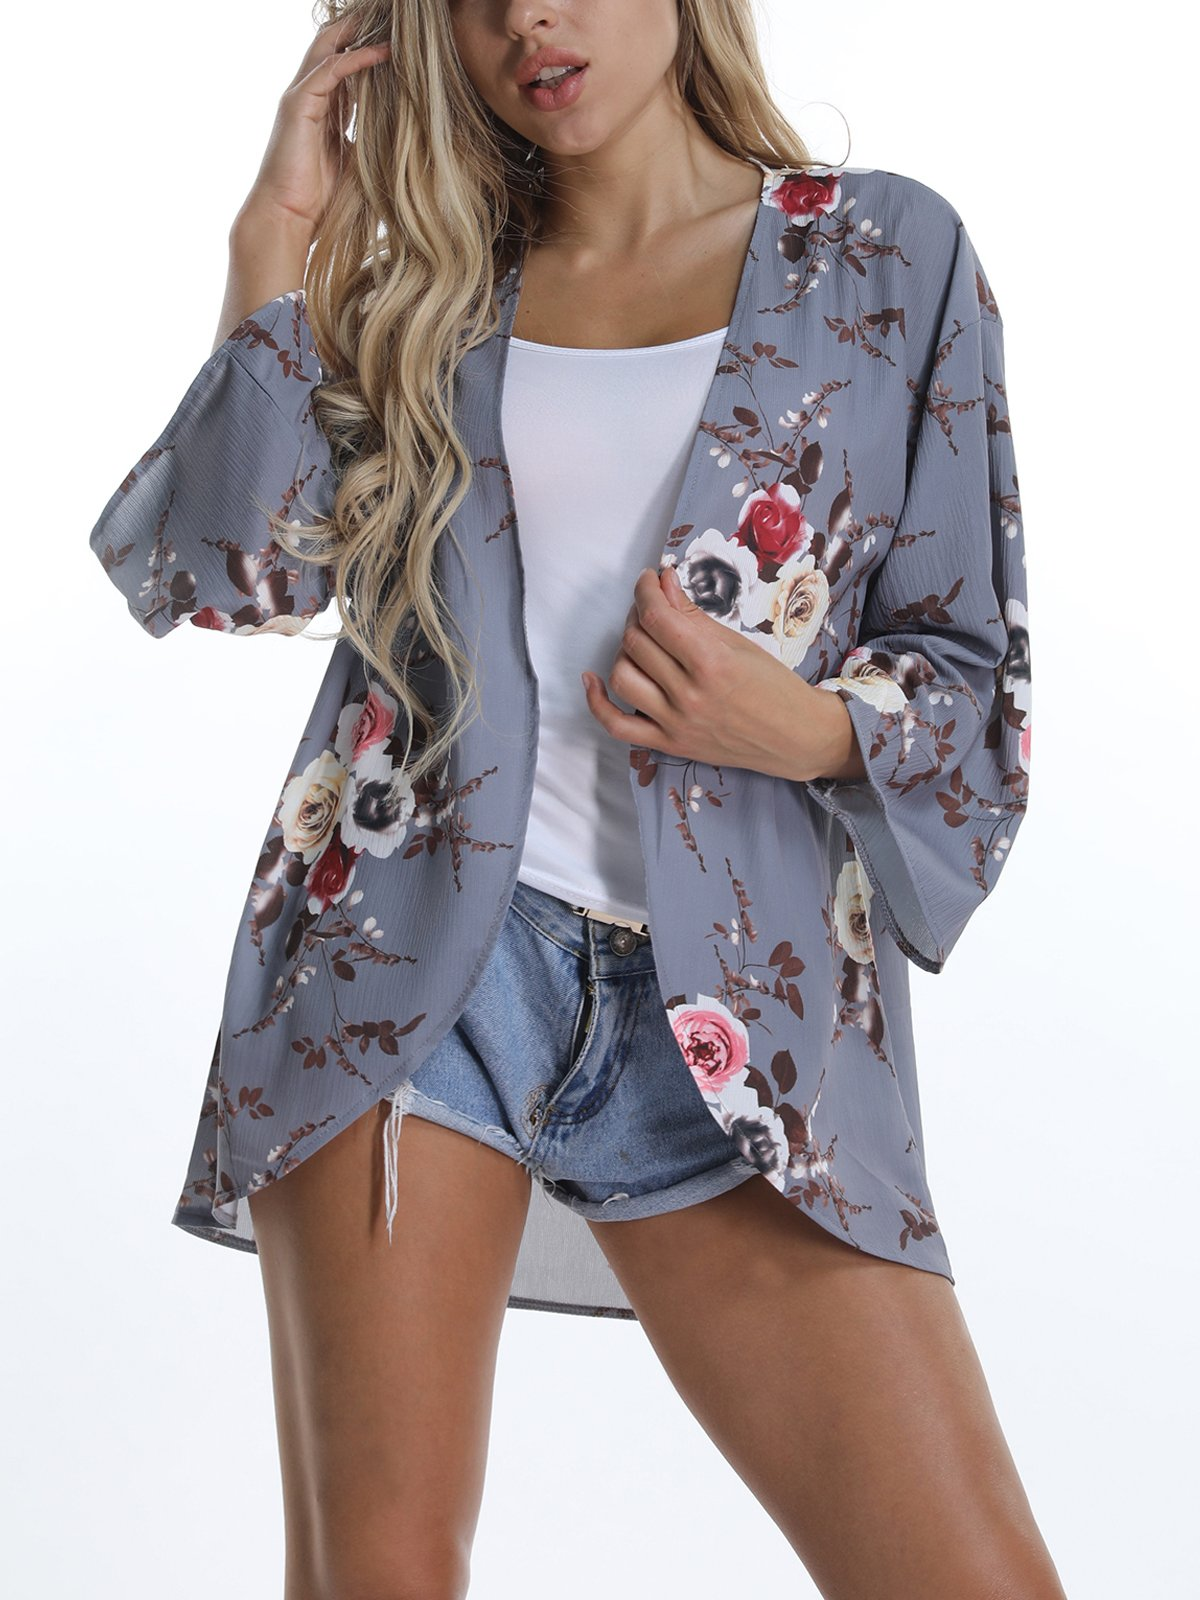 VYNCS Women's Sexy 3/4 Sleeve Floral Print Cardigans Blouse Tops Chiffon Casual Beach Cover up Summer (Grey, Medium)